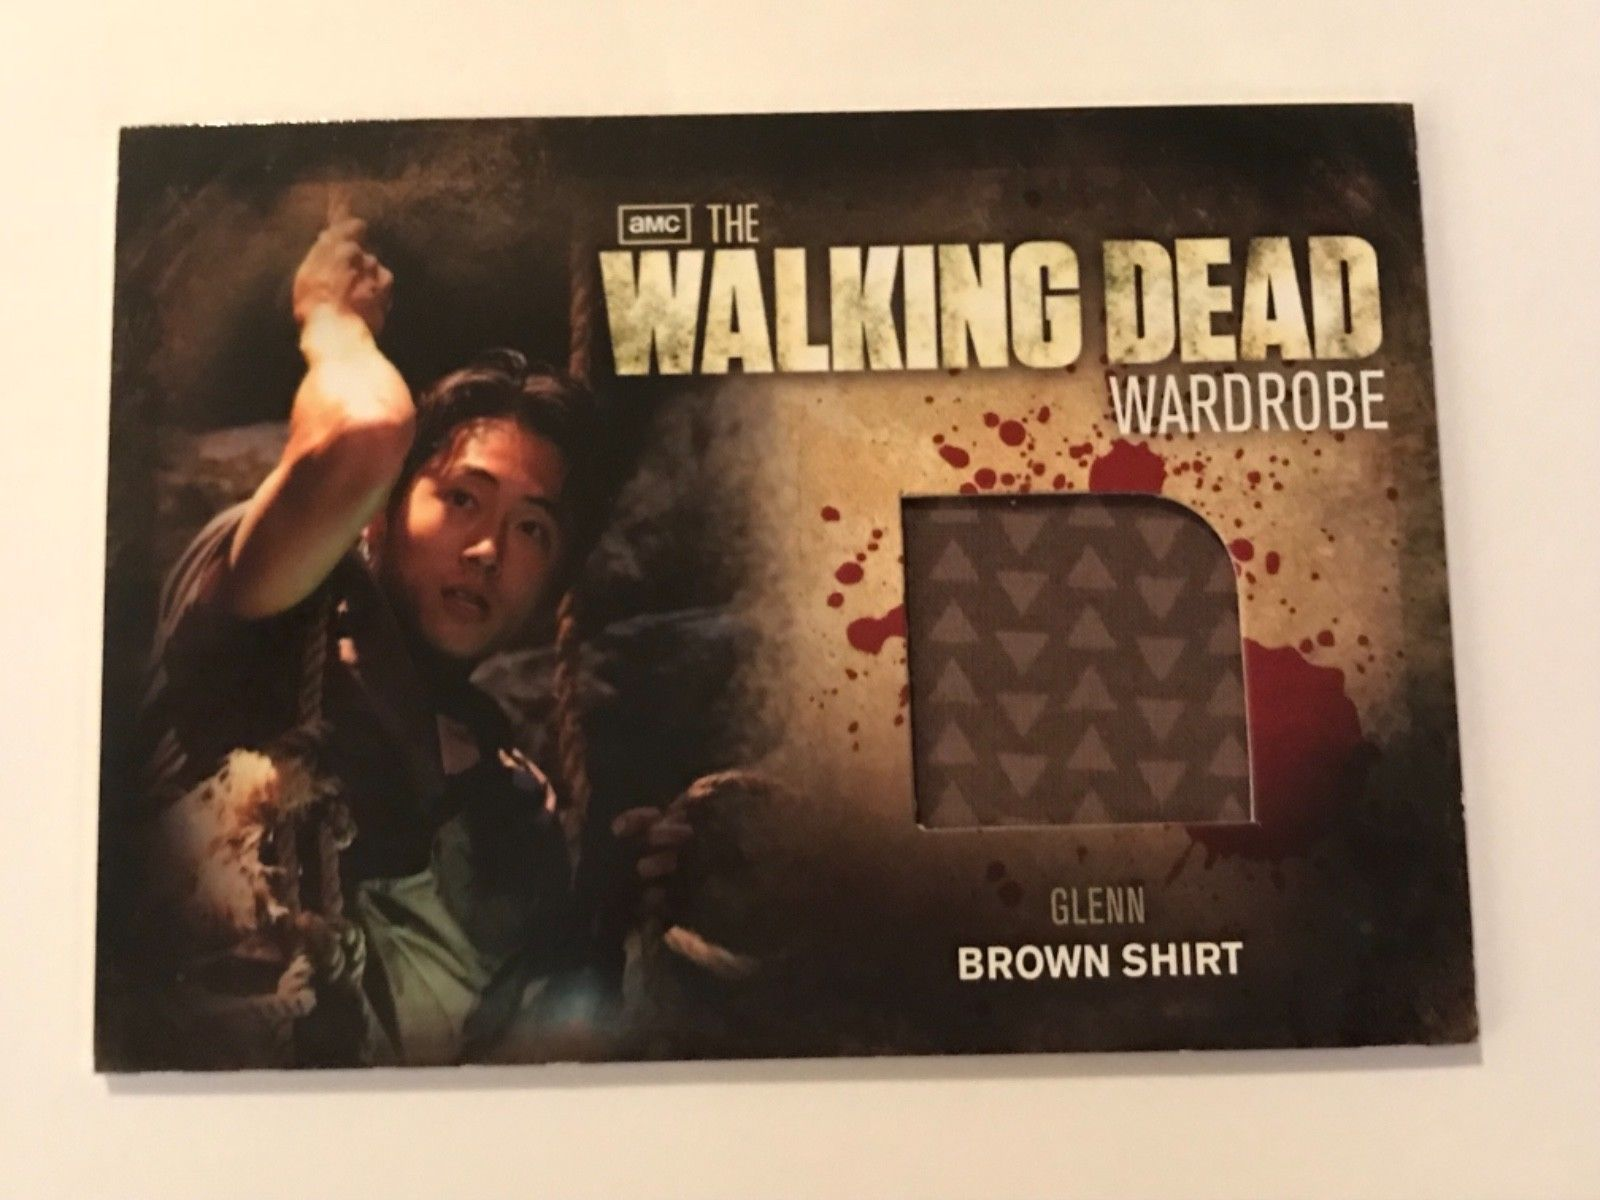 Primary image for Cryptozoic Walking Dead Season 2 Wardrobe Steven Yeun as Glenn M6